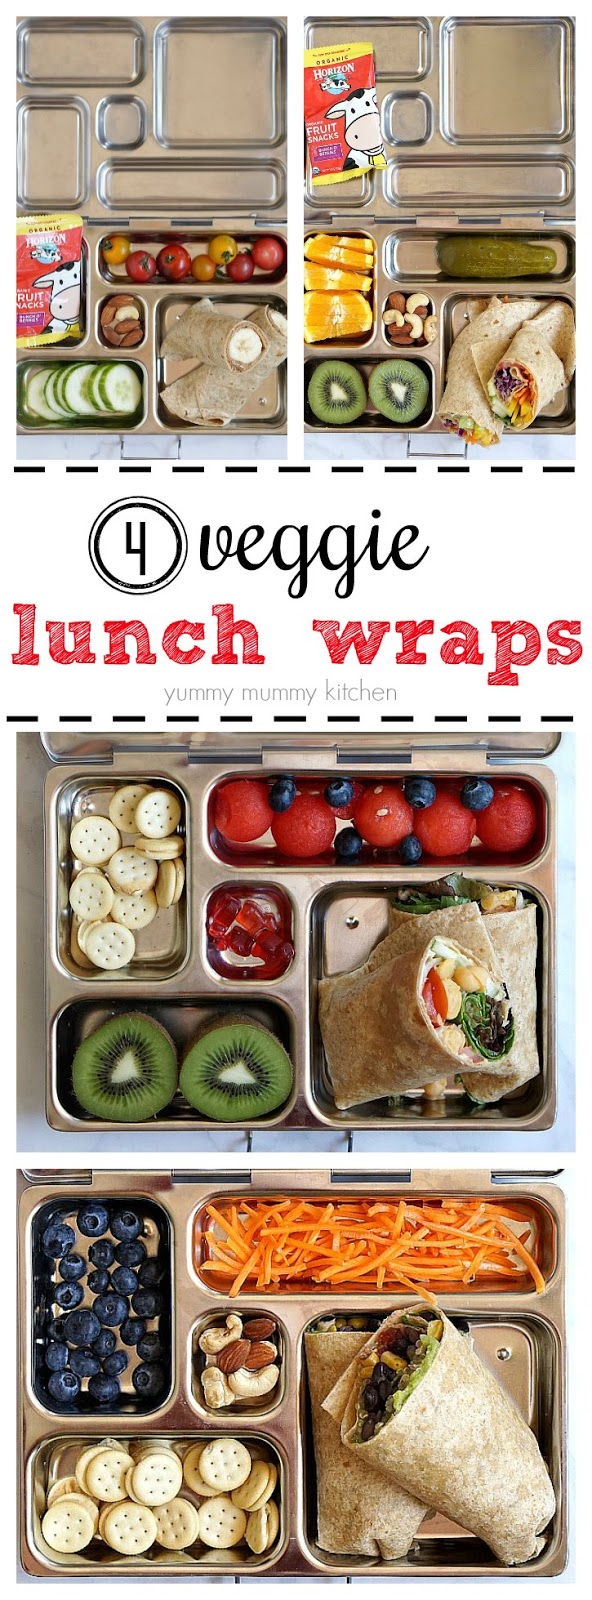 Four veggie tortilla wraps and packed lunch boxes for kids or adults.